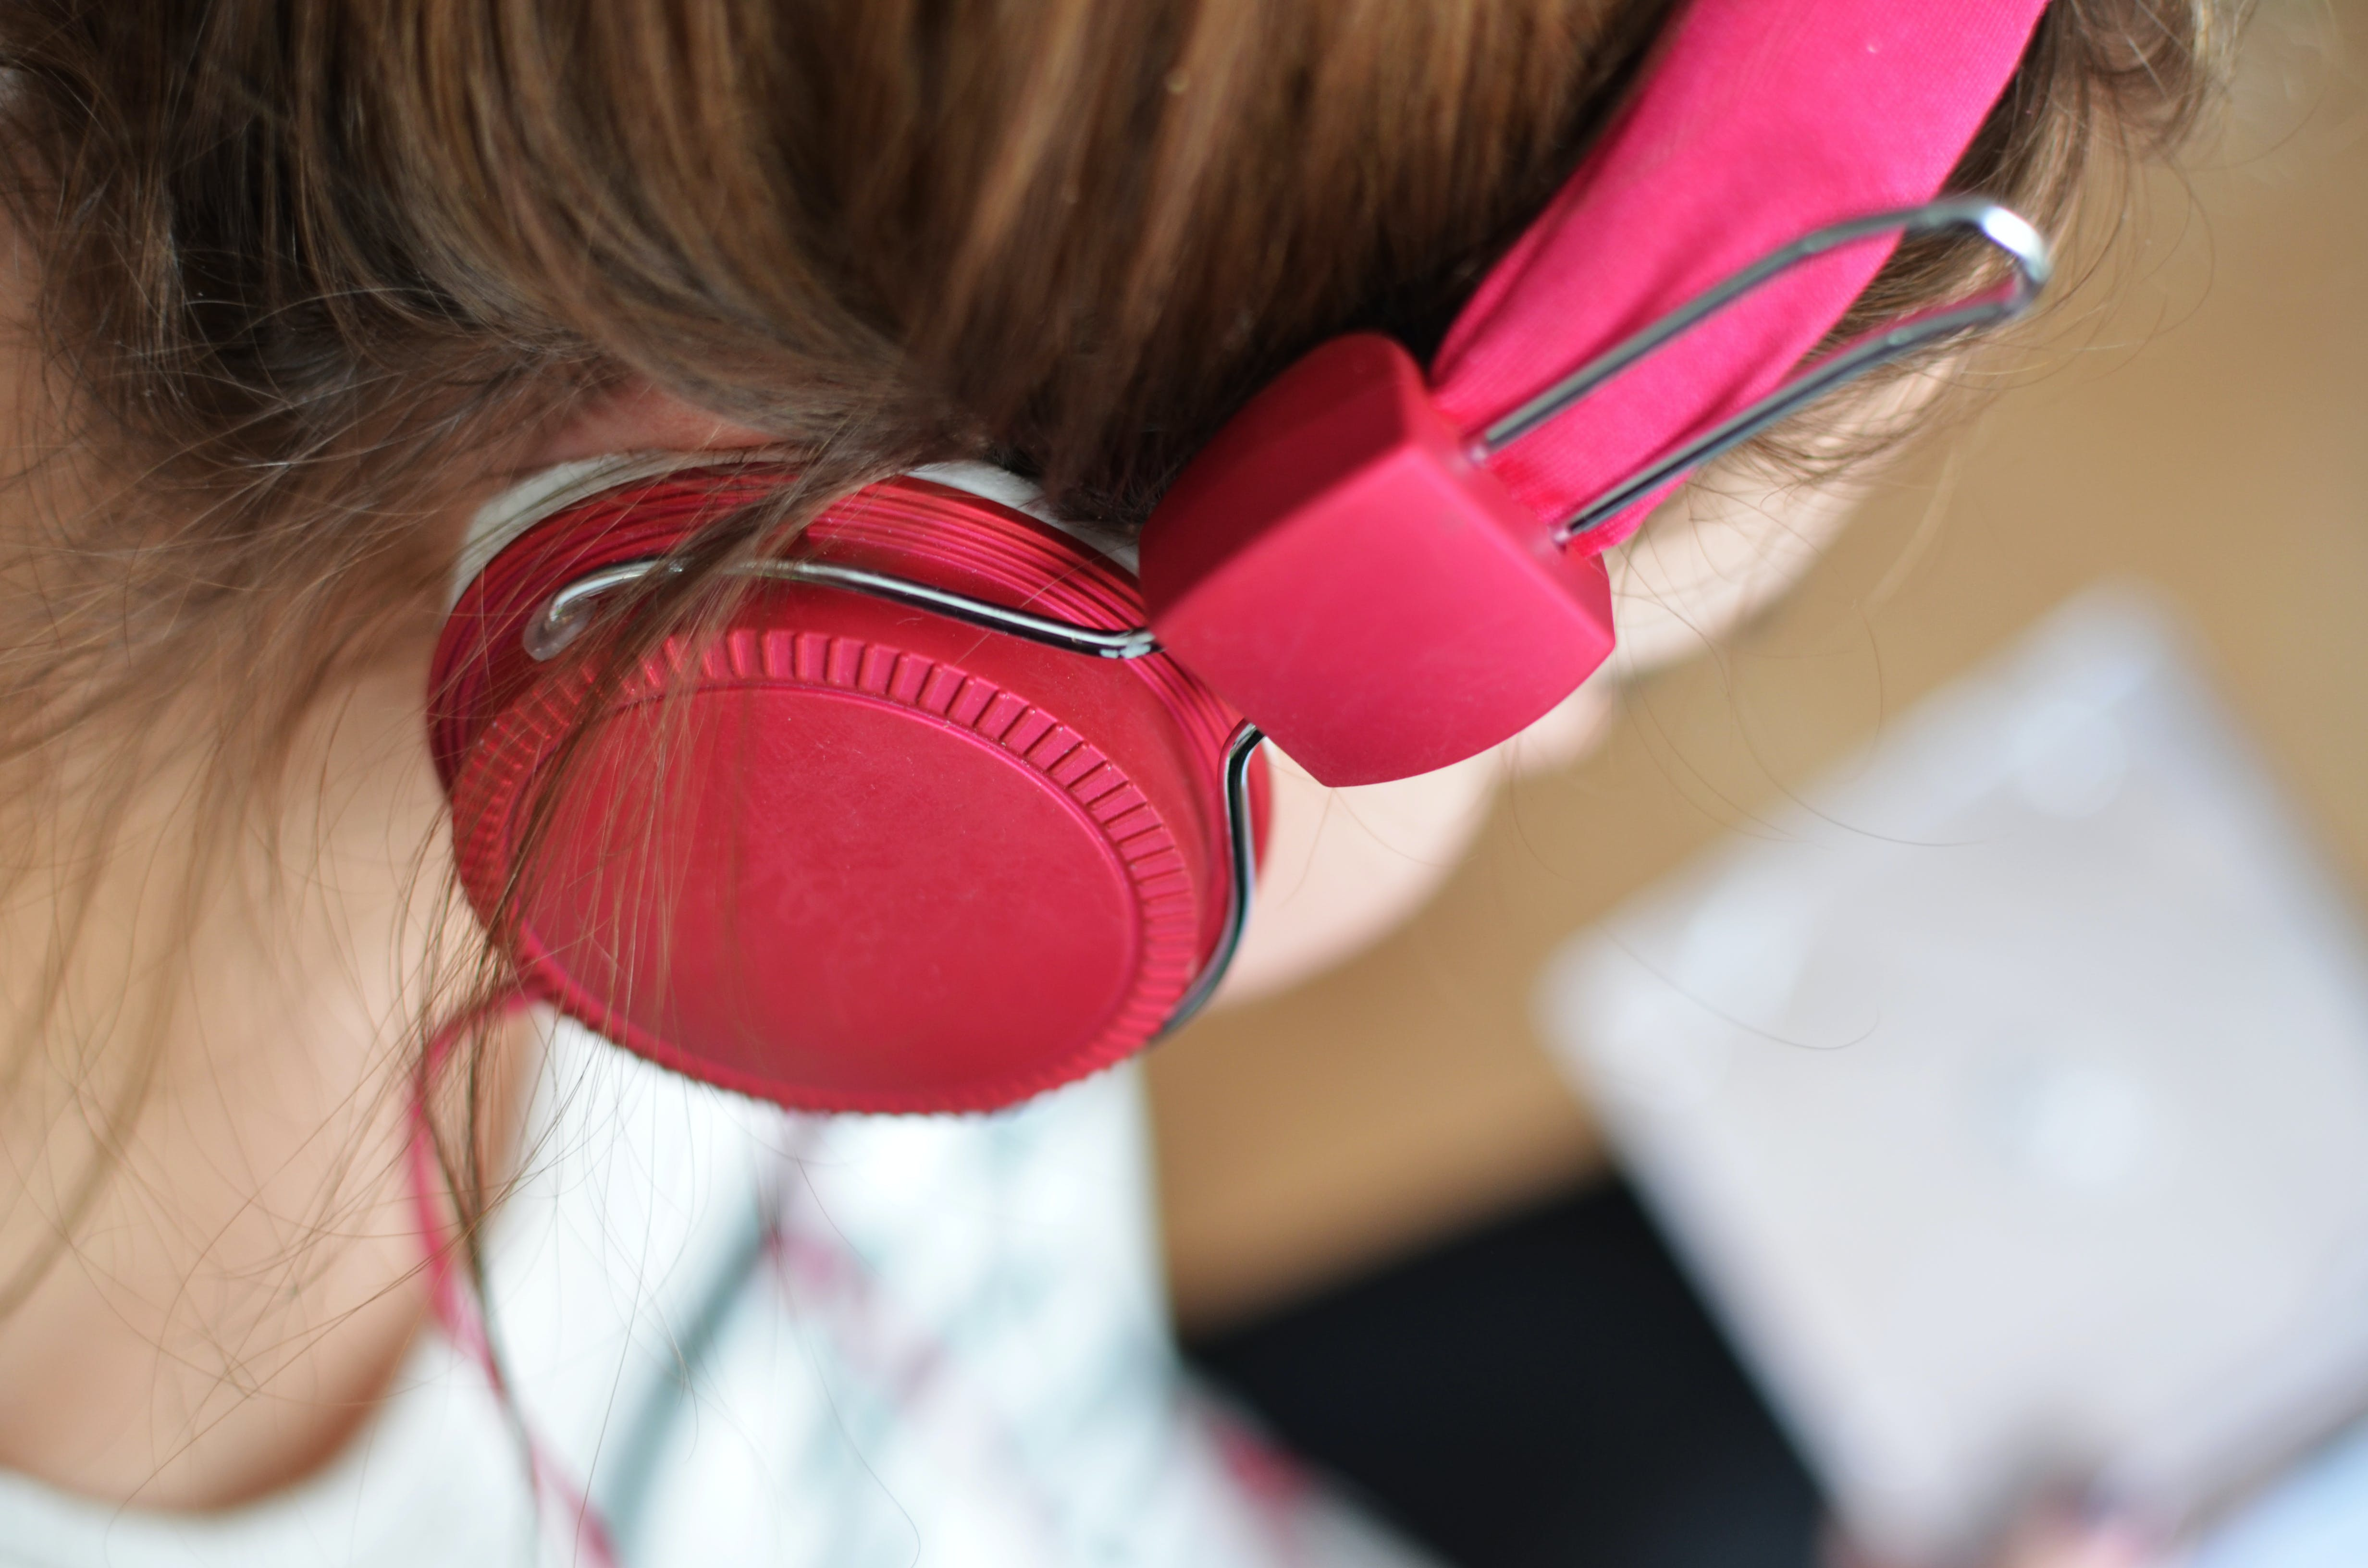 Free stock photo of person, woman, music, pink